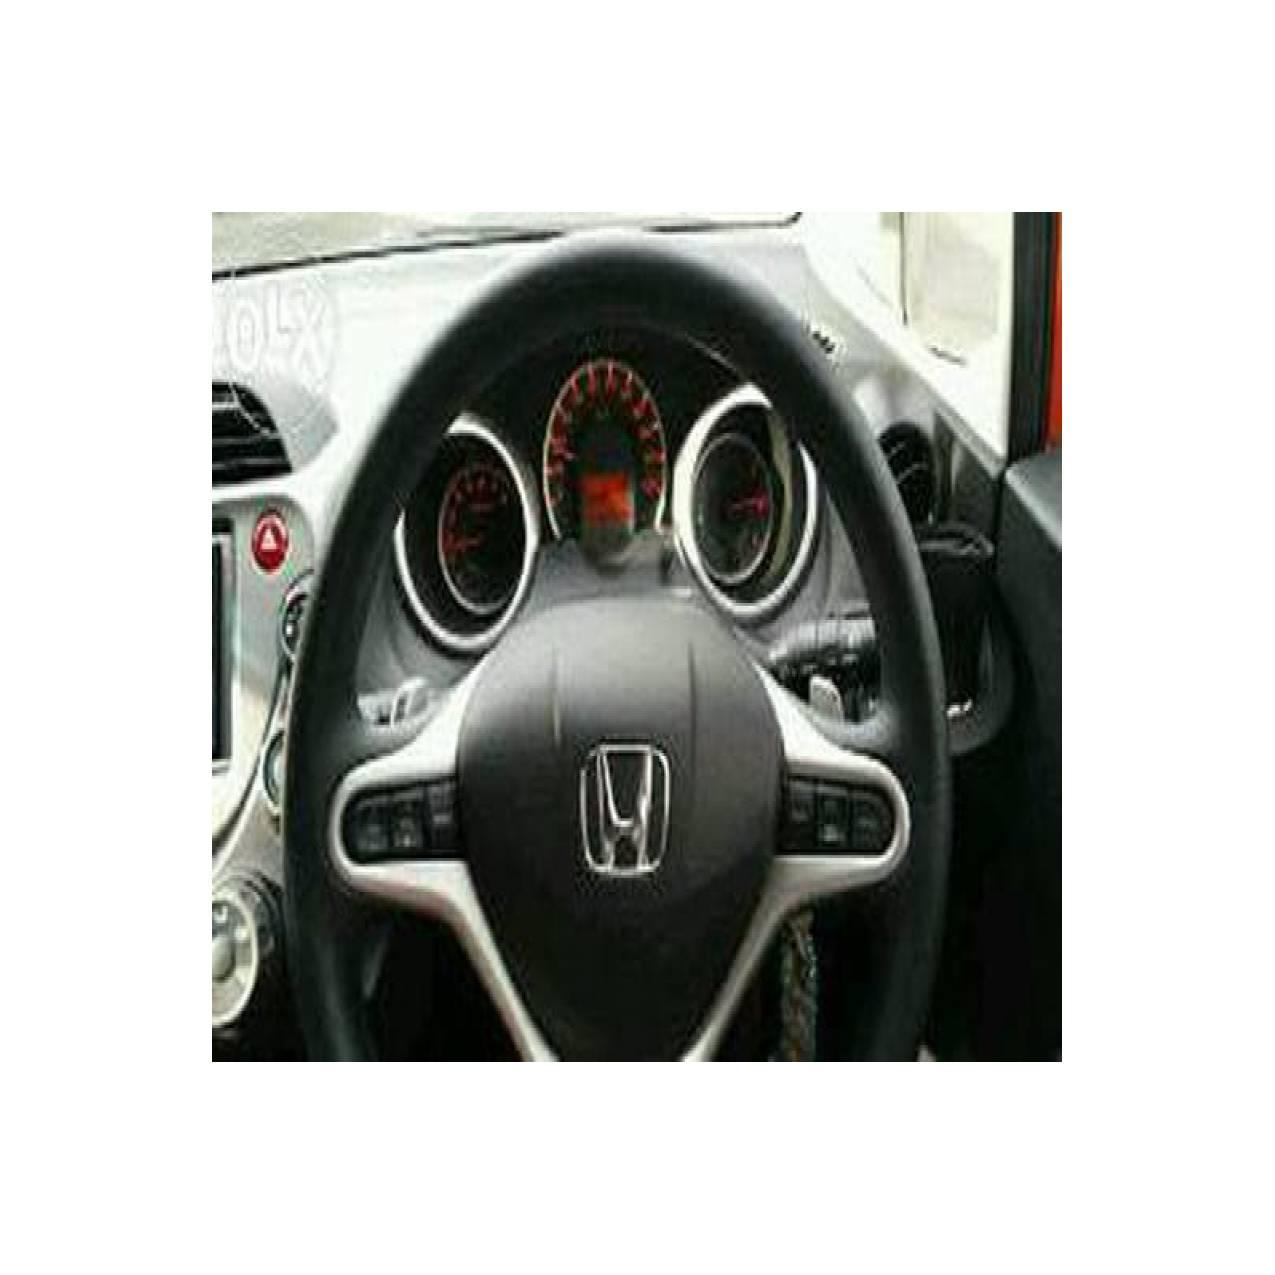 Kelebihan Sedang Diskon Gear Retract Spion Honda Gigi Jazz Rs Civic Tombol Remote Steer Audio City